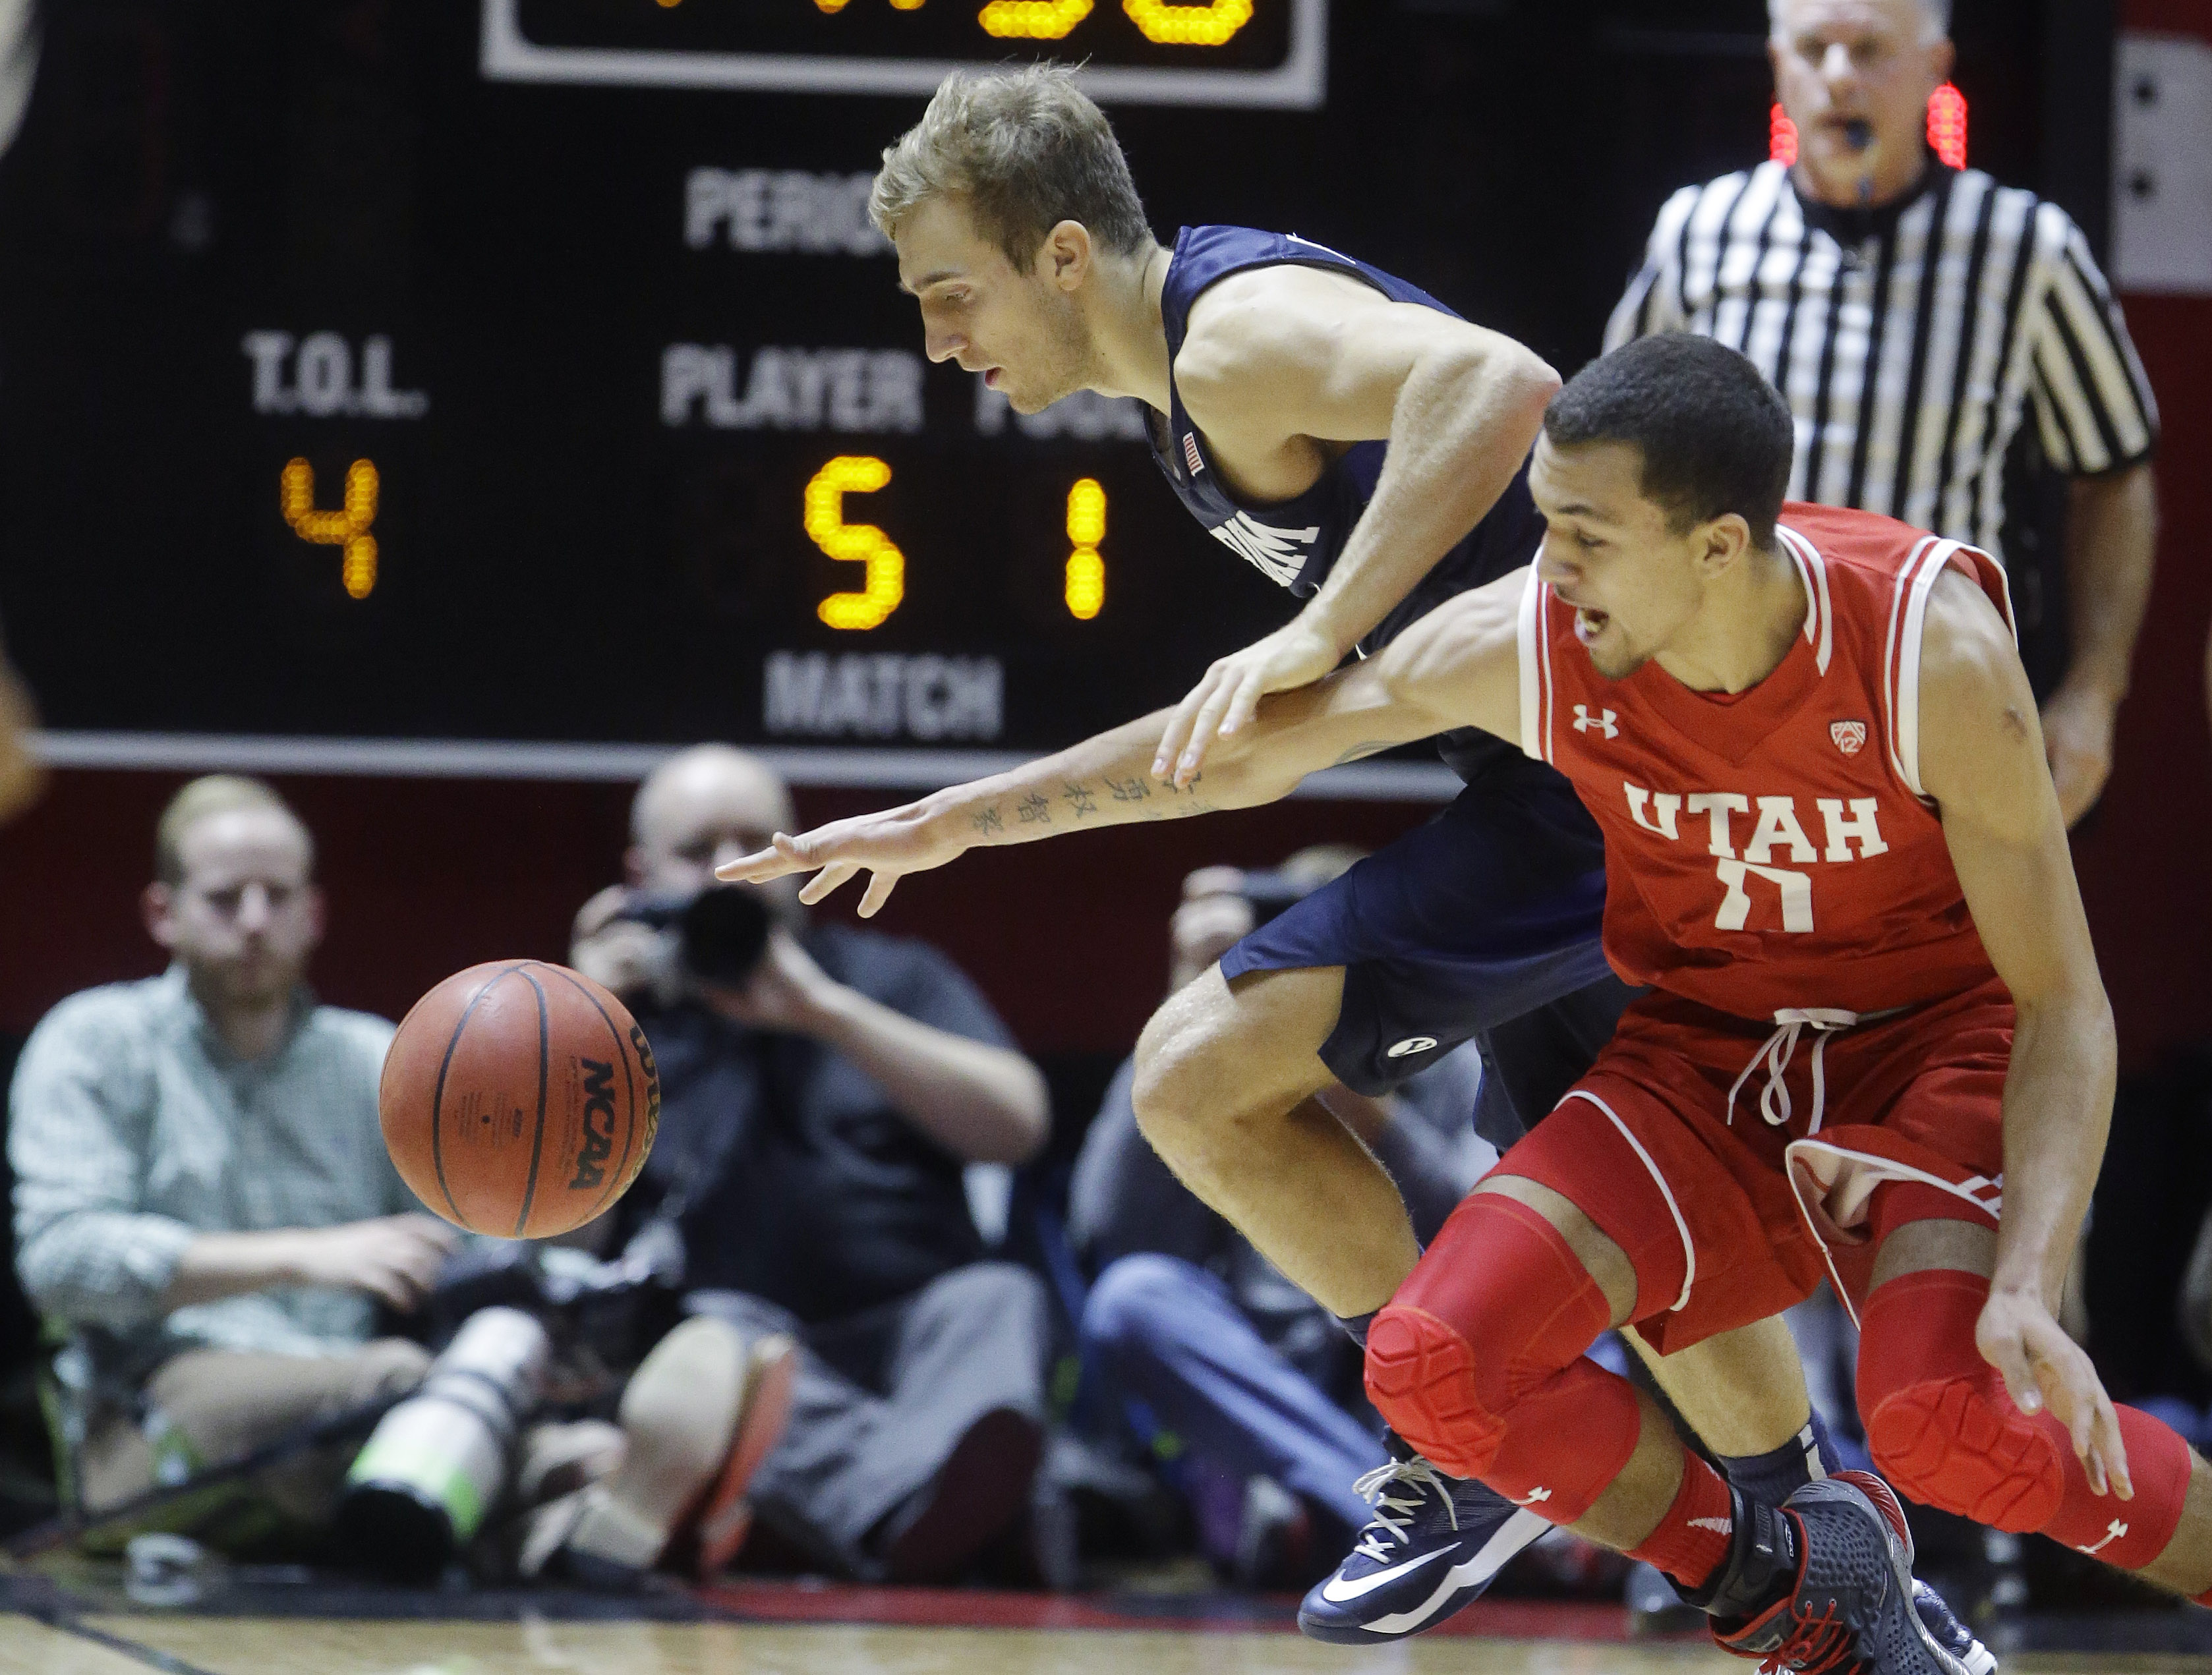 BYU guard Chase Fischer, left, and Utah forward Brekkott Chapman (0) battle for a loose ball in the first half during an NCAA college basketball game, Wednesday, Dec. 2, 2015, in Salt Lake City. (AP Photo/Rick Bowmer)